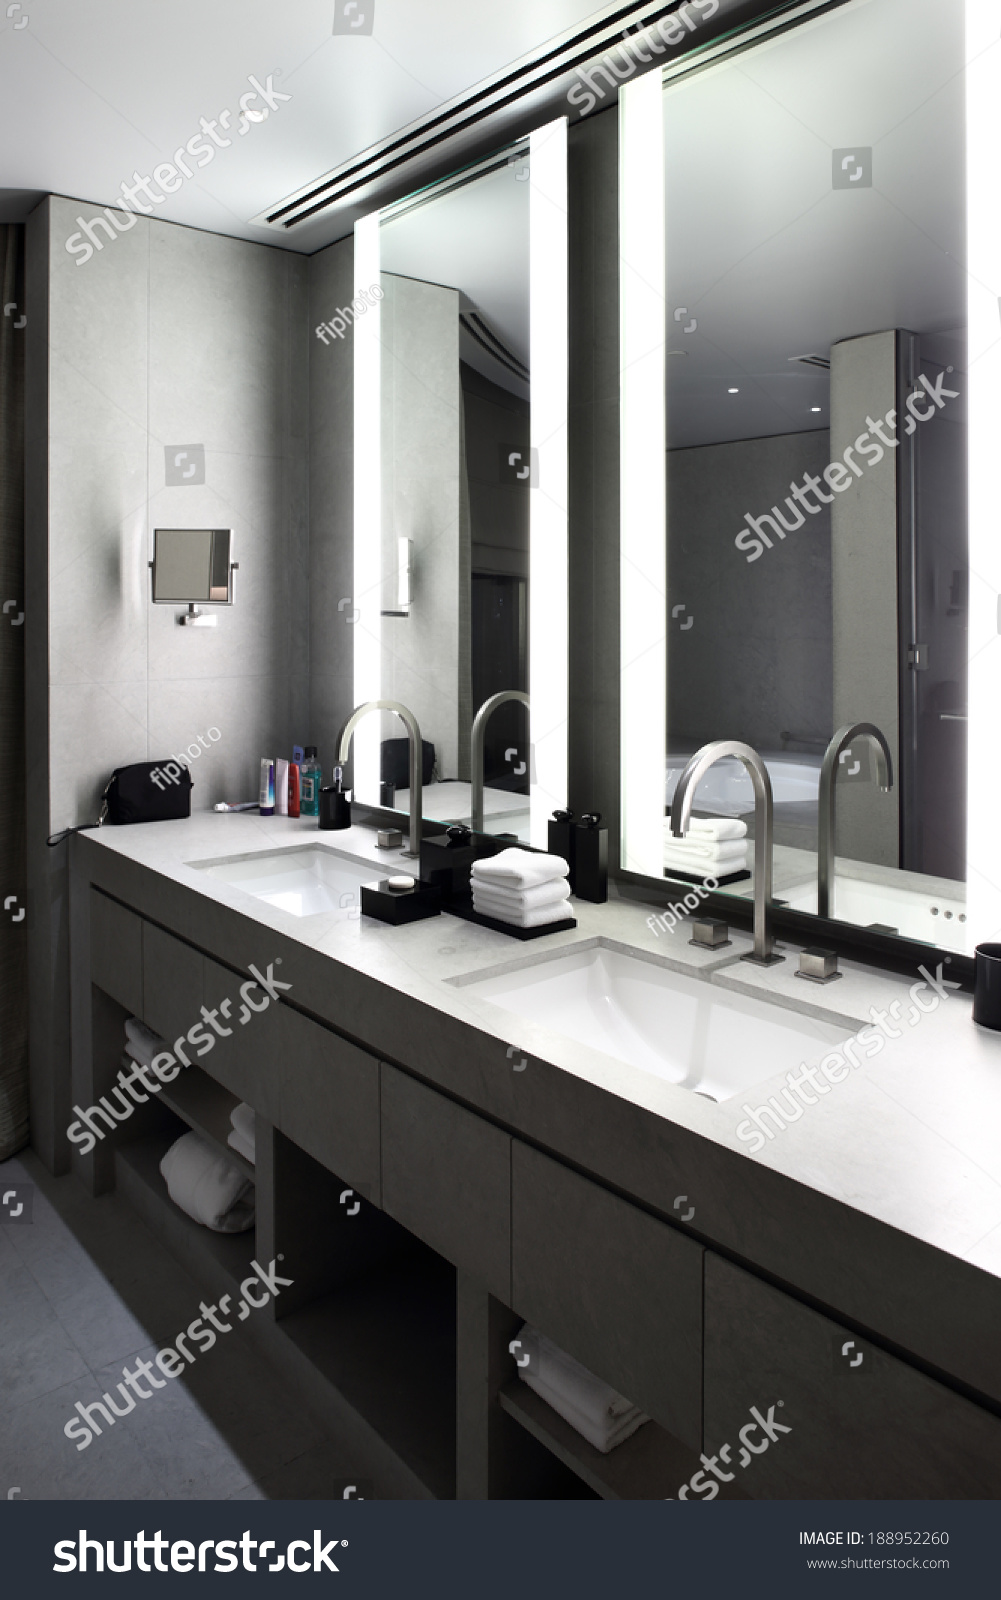 Beautiful interior modern toilet bright colors stock photo 188952260 shutterstock - Lavish white and grey kitchen for hygienic and bright view ...